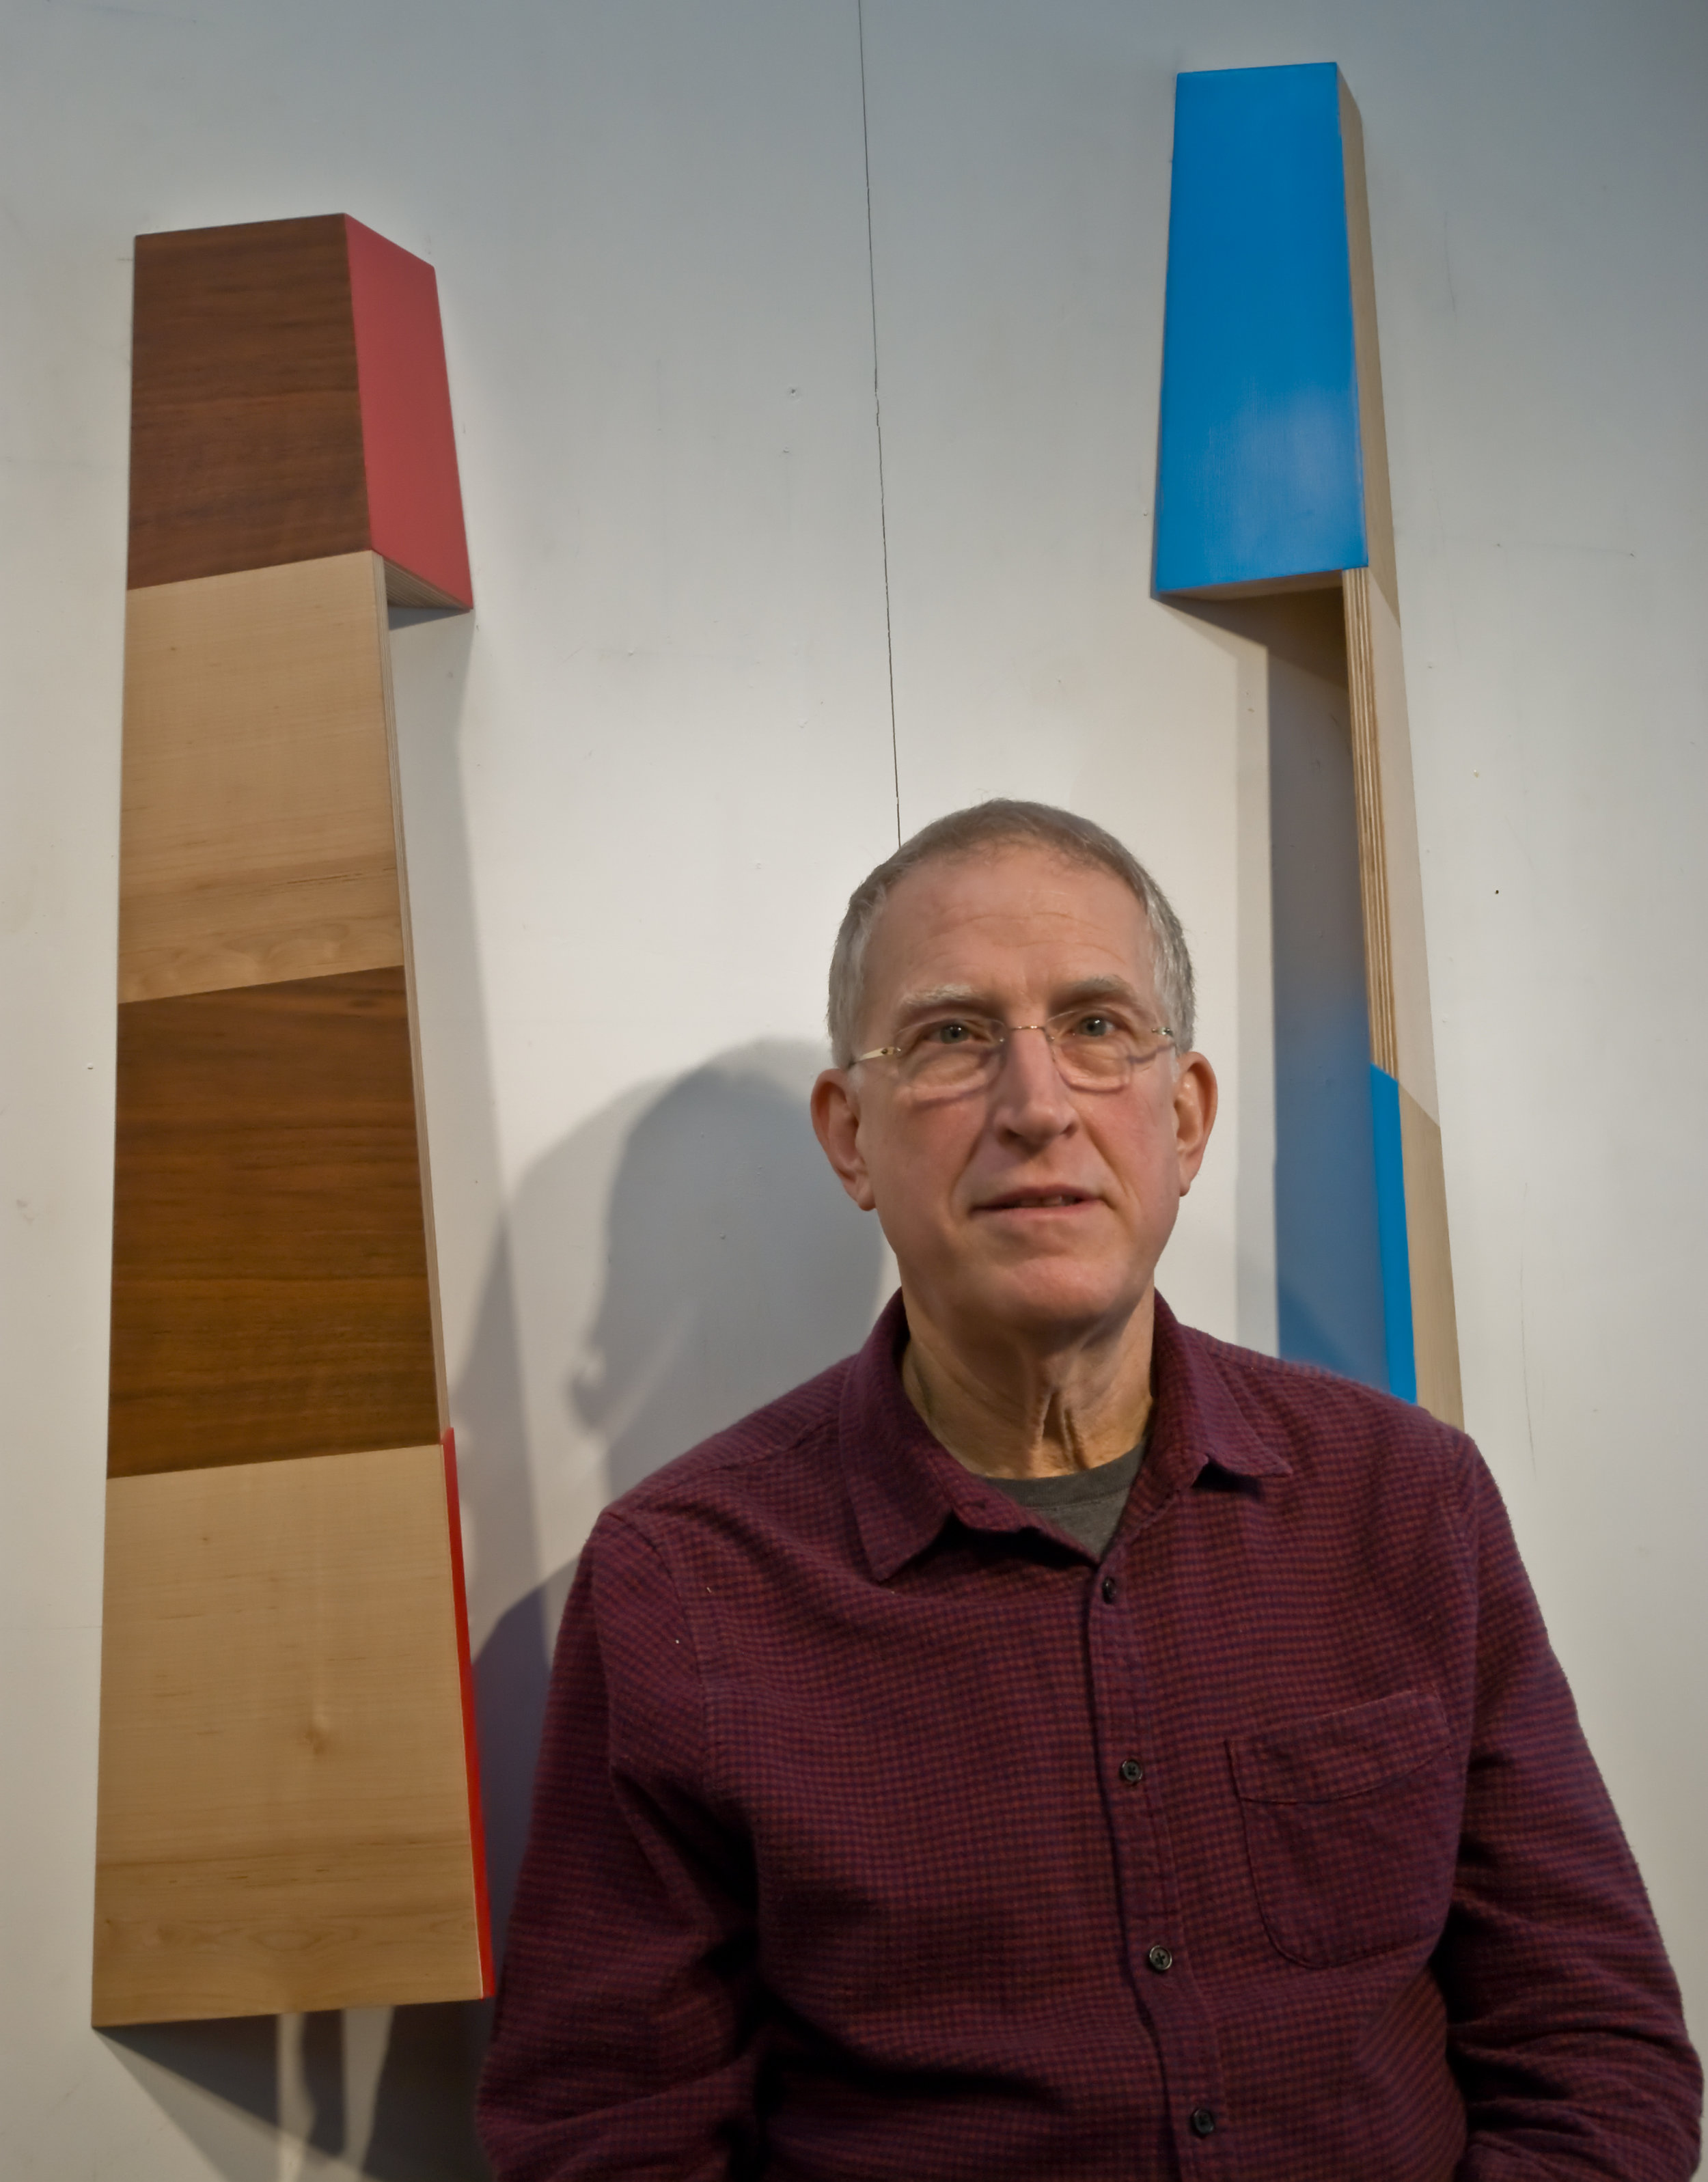 "Richard Bottwin - ""Architecture and functional objects inform the vocabulary of my sculpture. The plywood surfaces, laminated with wood veneers or painted with acrylic colors, are configured to reveal surprising shapes and patterns with shifts in the viewer's perspective. A sense of disorientation, implied weightlessness, human gesture and the element of surprise are created by the reductive forms and subvert the modernist vocabulary of the simple constructions.""RICHARD BOTTWIN (b. 1950) lives and works in New York City and has maintained his sculpture studio in Brooklyn since 1990. He has had solo exhibitions at, among others, OK Harris Gallery in New York, Metaphor Gallery in Brooklyn, and Pentimenti Gallery in Philadelphia. He has participated in group exhibitions at Tacit Gallery, Melbourne; DM Contemporary Gallery, New York; Bunsen/ Götz Galerie, Nuremberg; Galleri Tom Christoffersen, Copenhagen; and Art Forum Ute Barth, Zurich. His work has been included in group shows at The Neuer Kunstverein in Aschaffenburg, Germany; The Visual Arts Center of New Jersey, Summit NJ; Moma PS 1 in Long Island City, NY; and the Pennsylvania Academy of Fine Arts in Philadelphia. Bottwin has also created site-specific installations at The Sculpture Center in Long Island City, NY; The Pratt Institute in Brooklyn NY; and in Fairmont Park, Philadelphia (with the Philadelphia Art Alliance). His work in public collections includes the Bayerische Landesbank headquarters in NYC and The Pratt Institute outdoor sculpture collection in Brooklyn. He has received two artist's grants from the State of Pennsylvania and one from New York State, and he was awarded a residency at the Edward Albee Foundation, Montauk NY. His work has been reviewed in The New York Times, The Philadelphia Inquirer and The Brooklyn Rail."